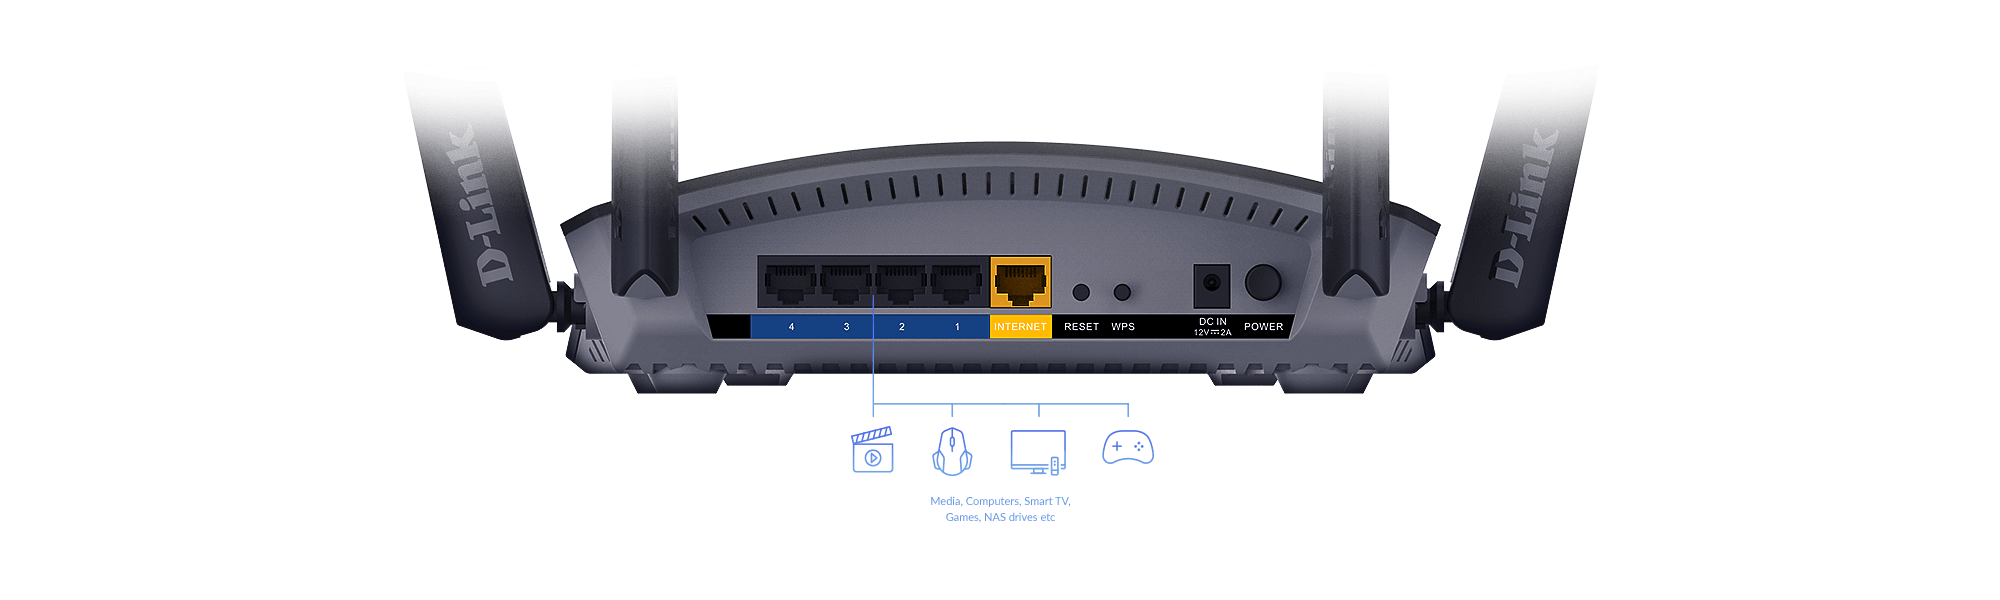 Ethernet ports for wired connections